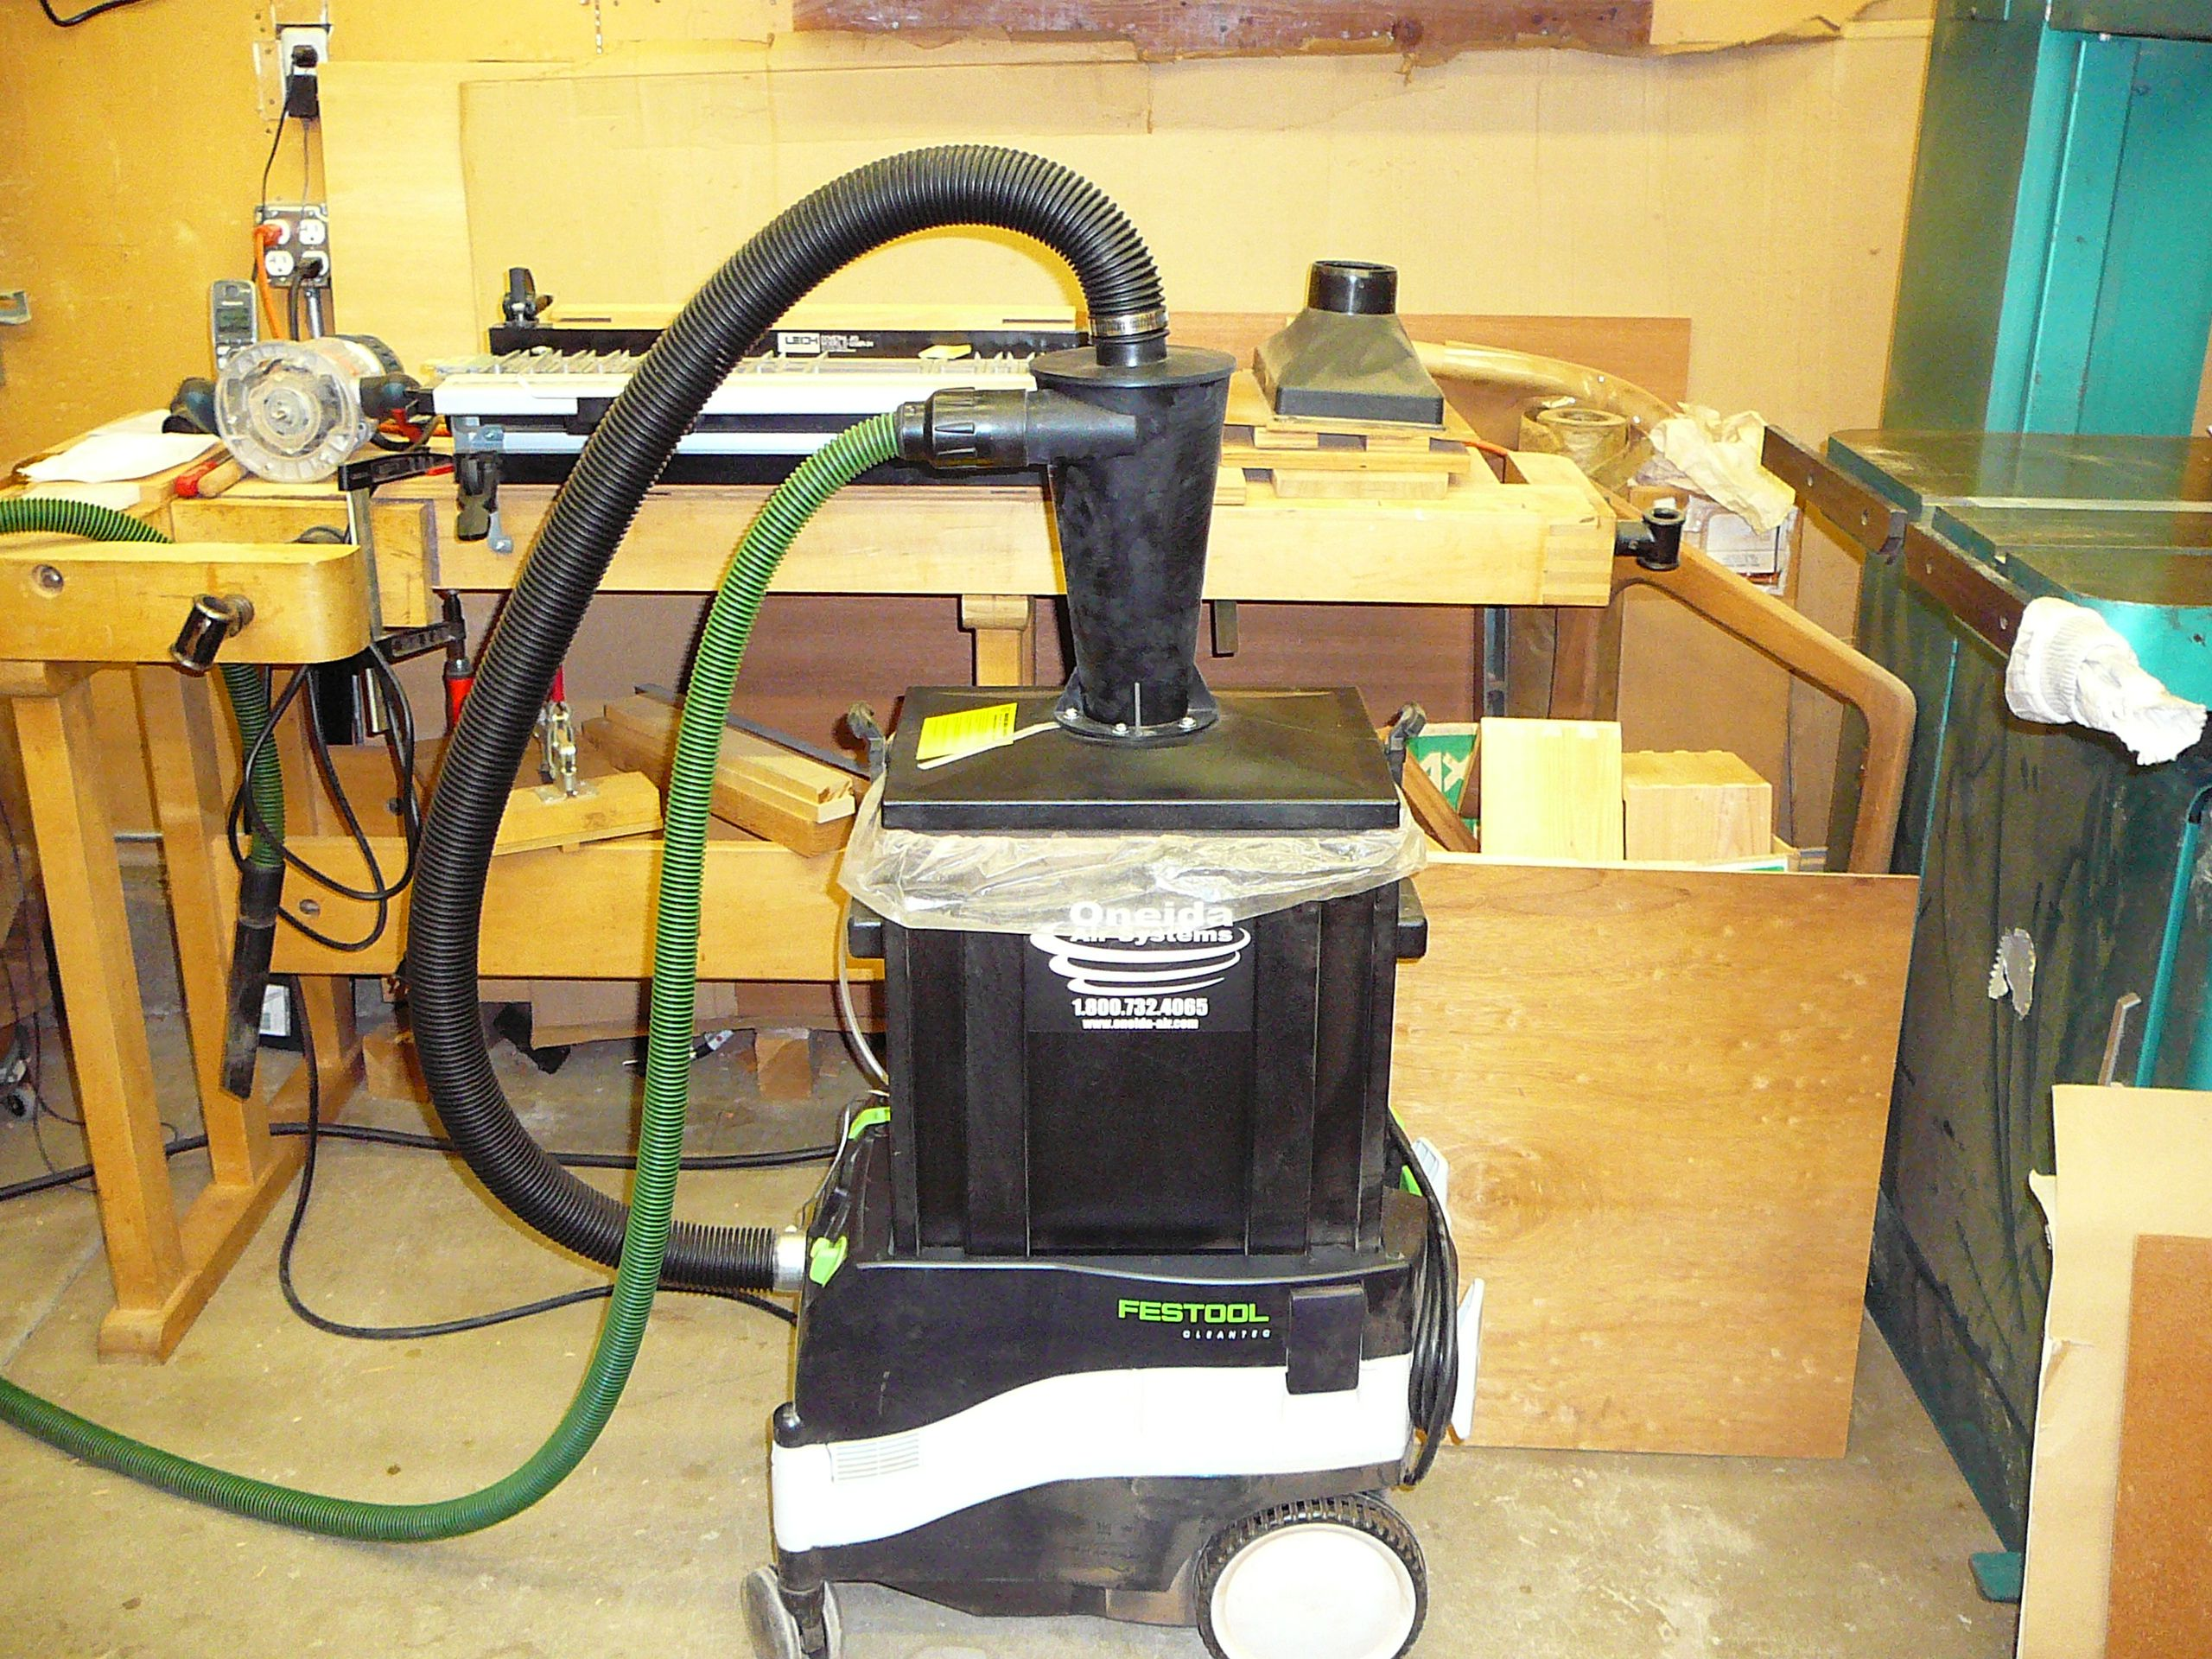 Ultimate Oneida Cyclone Dust Collector For Festool Vacs Festool Dust Collector Dust Collection System